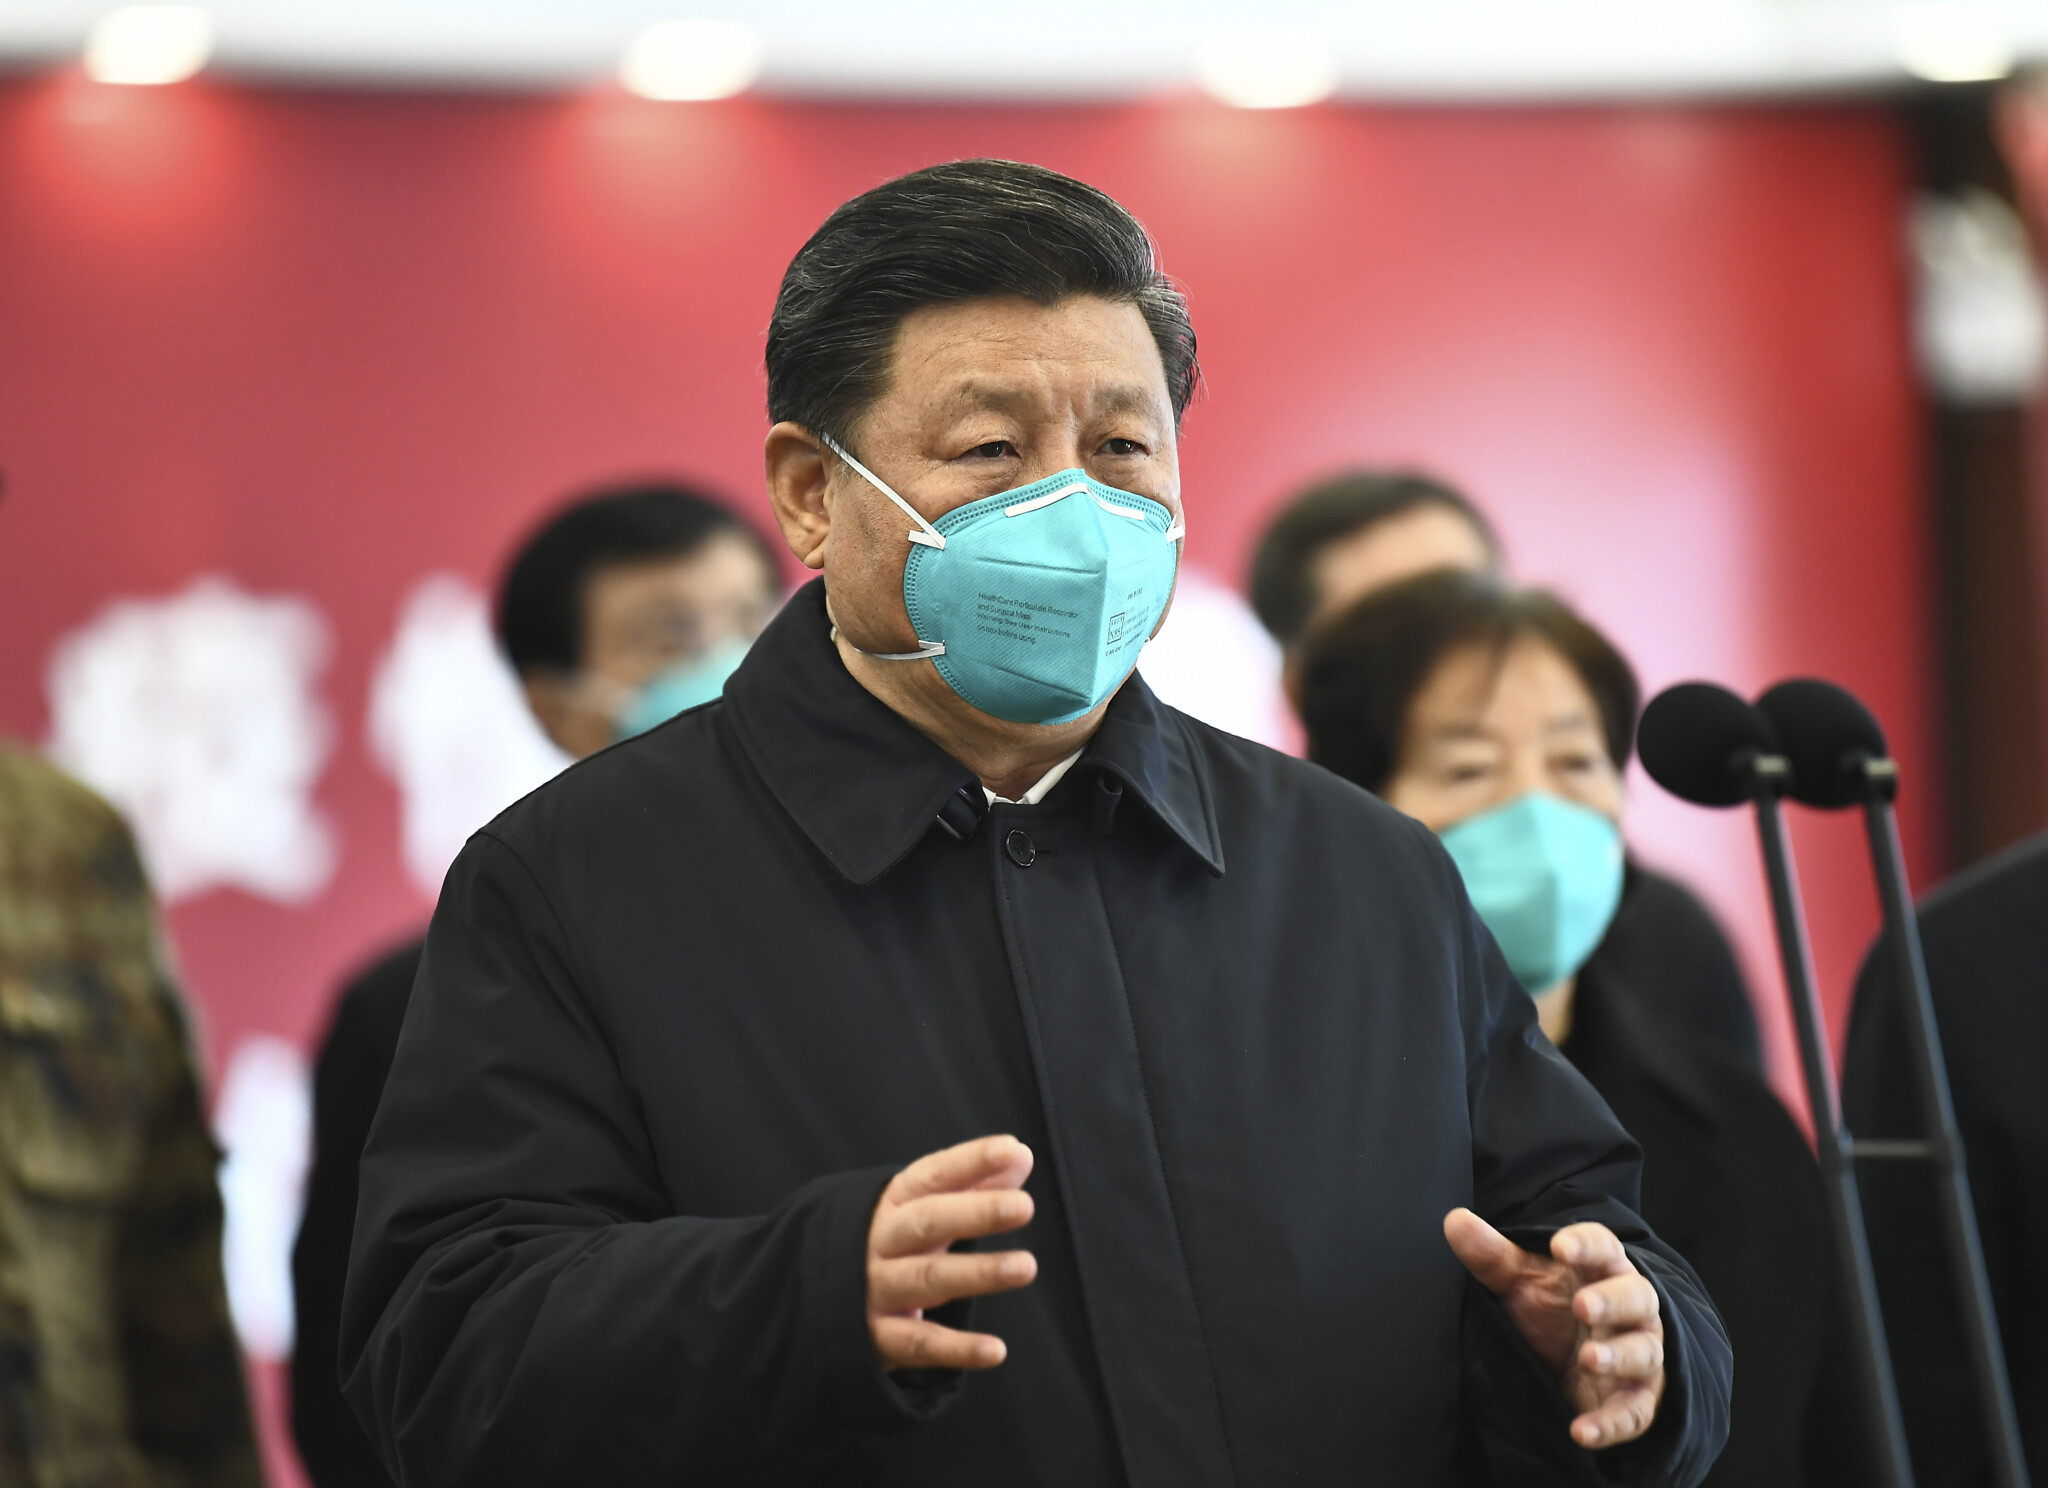 China's Xi says Wuhan has 'turned the tide' against virus epidemic ...